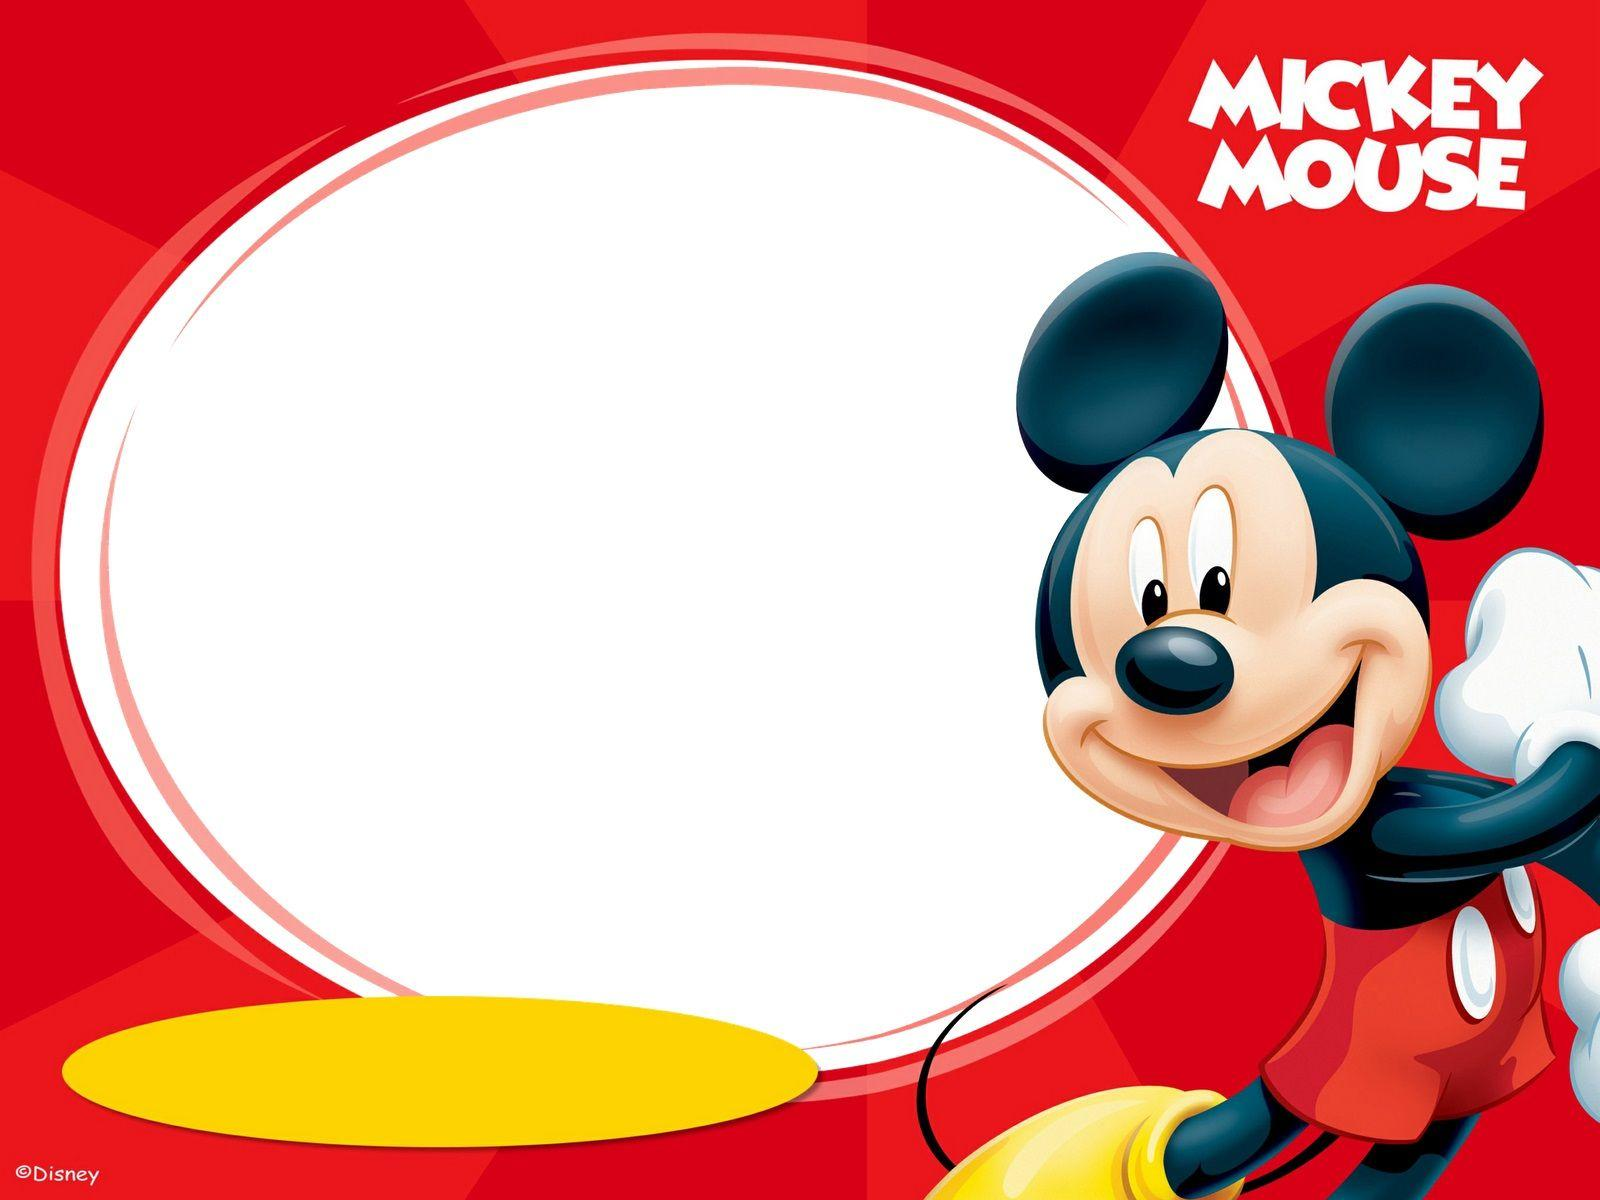 Mickey Mouse Wallpaper Backgrounds Mickey Mouse Birthday Background 1600x1200 Wallpaper Teahub Io